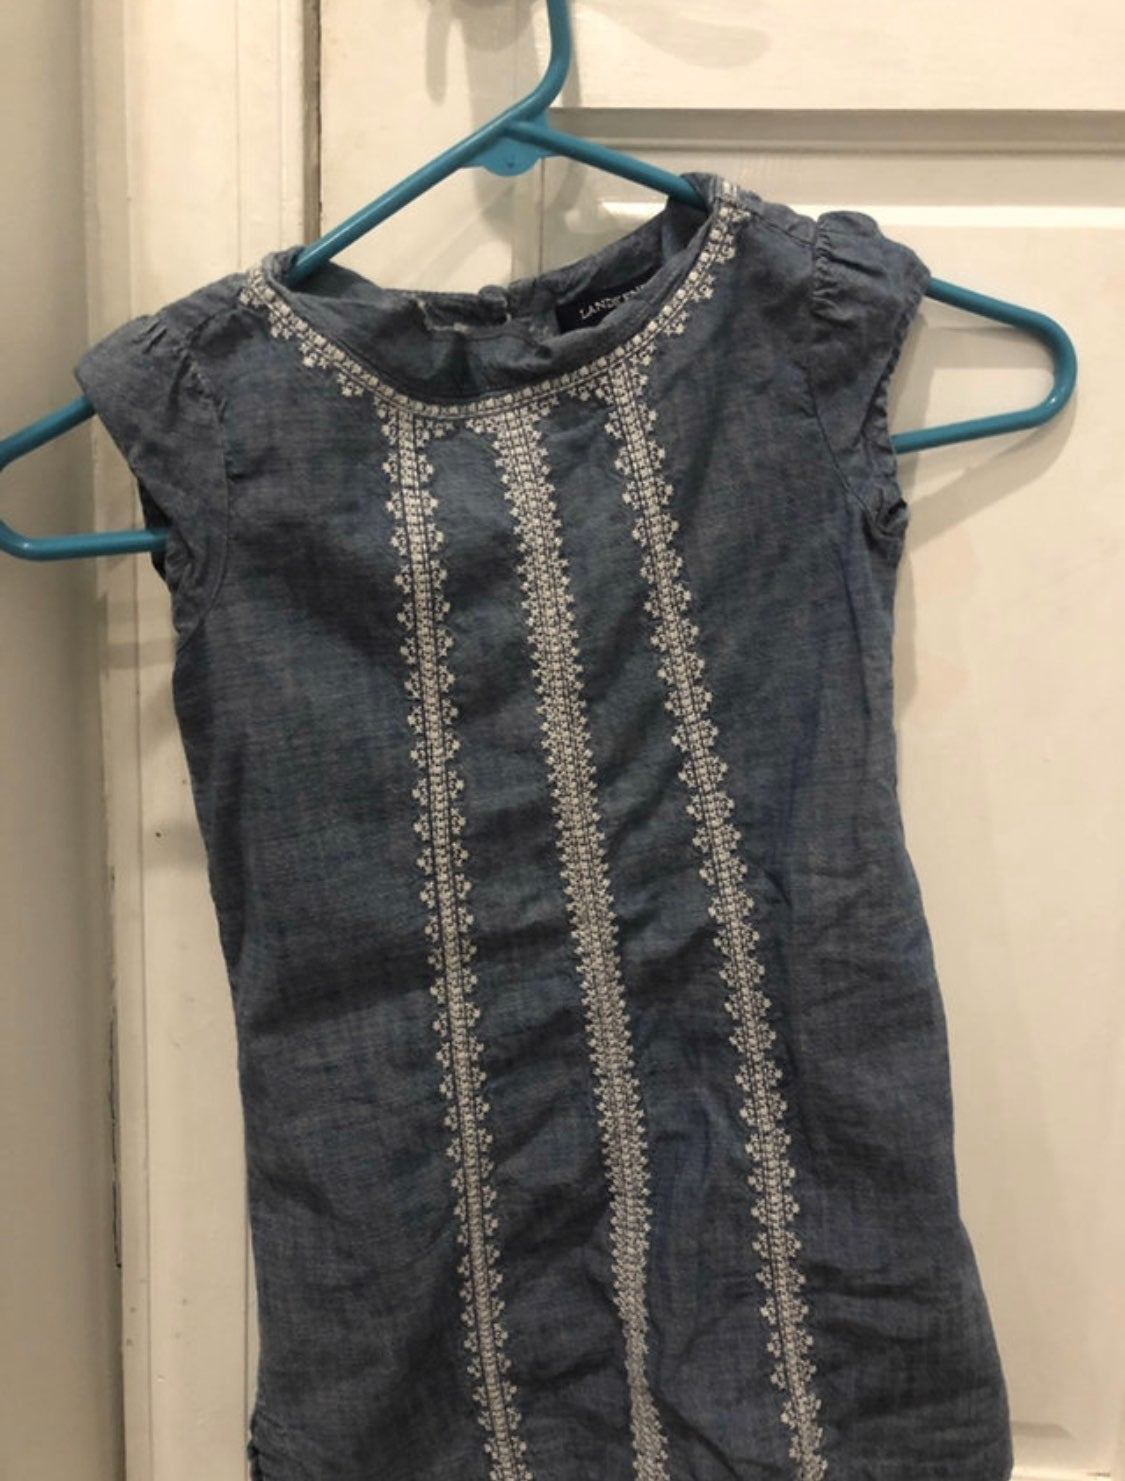 Lands' End Denim Dress size 6